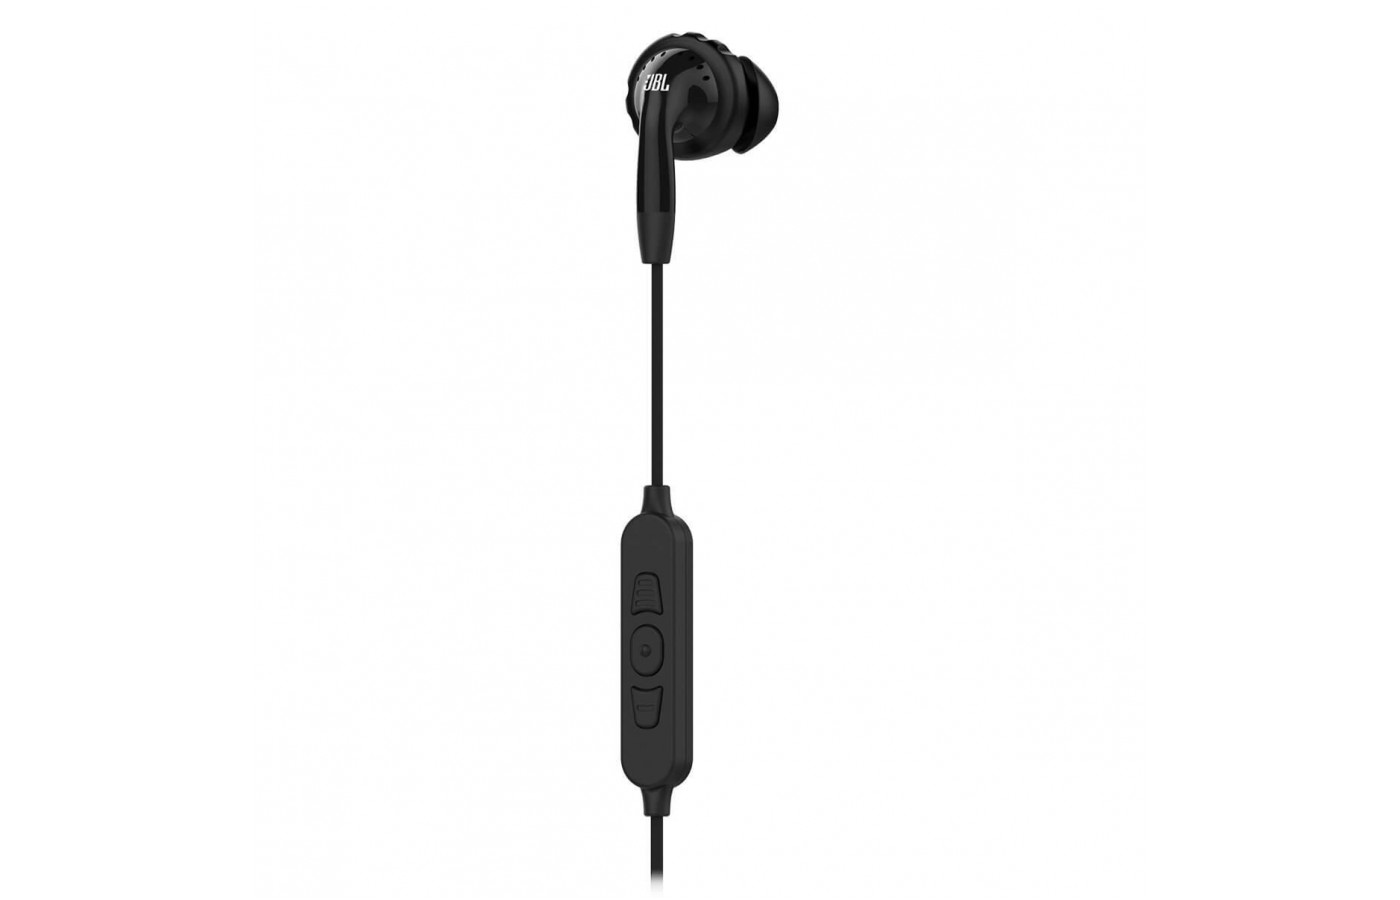 JBL Inspire 700 Earpiece